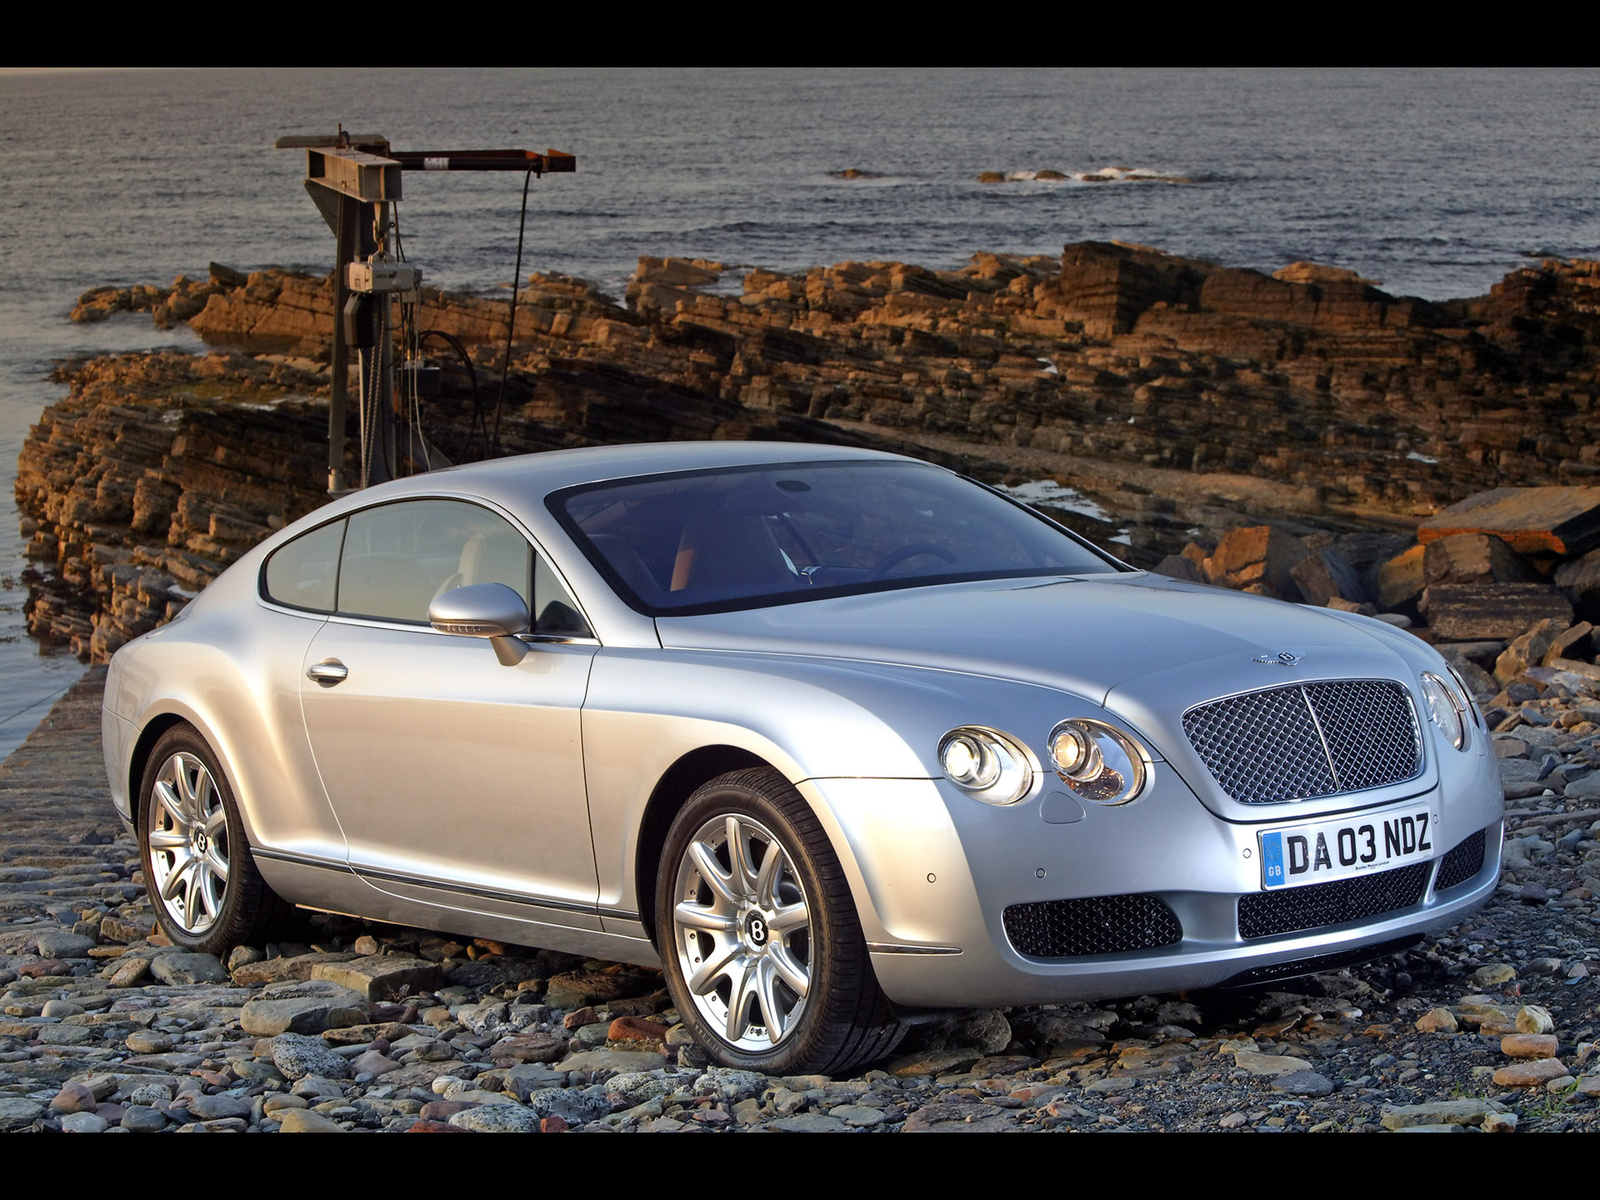 h news speed priced bentley goodwood continental festival price from of r